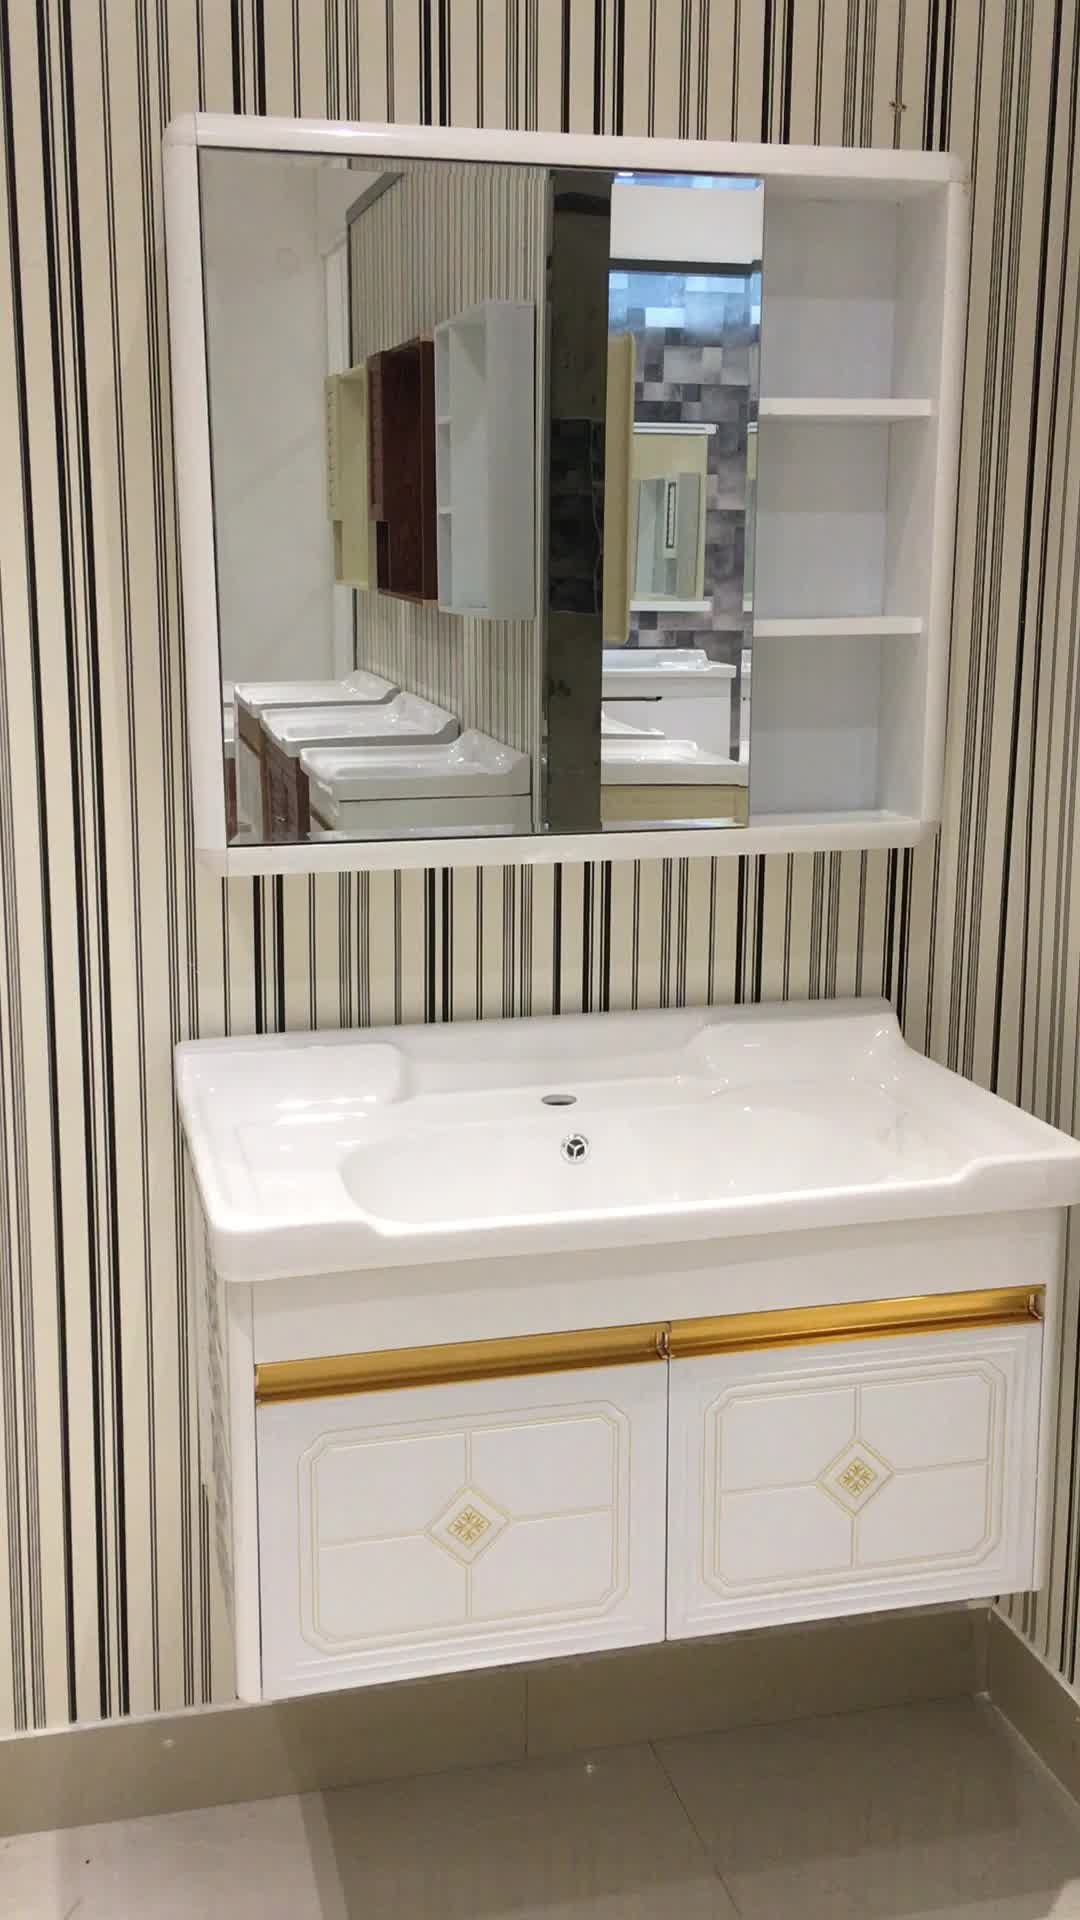 Aolaisi cheap modern style bathroom wall vanity cabinet - Cheap bathroom cabinets for sale ...